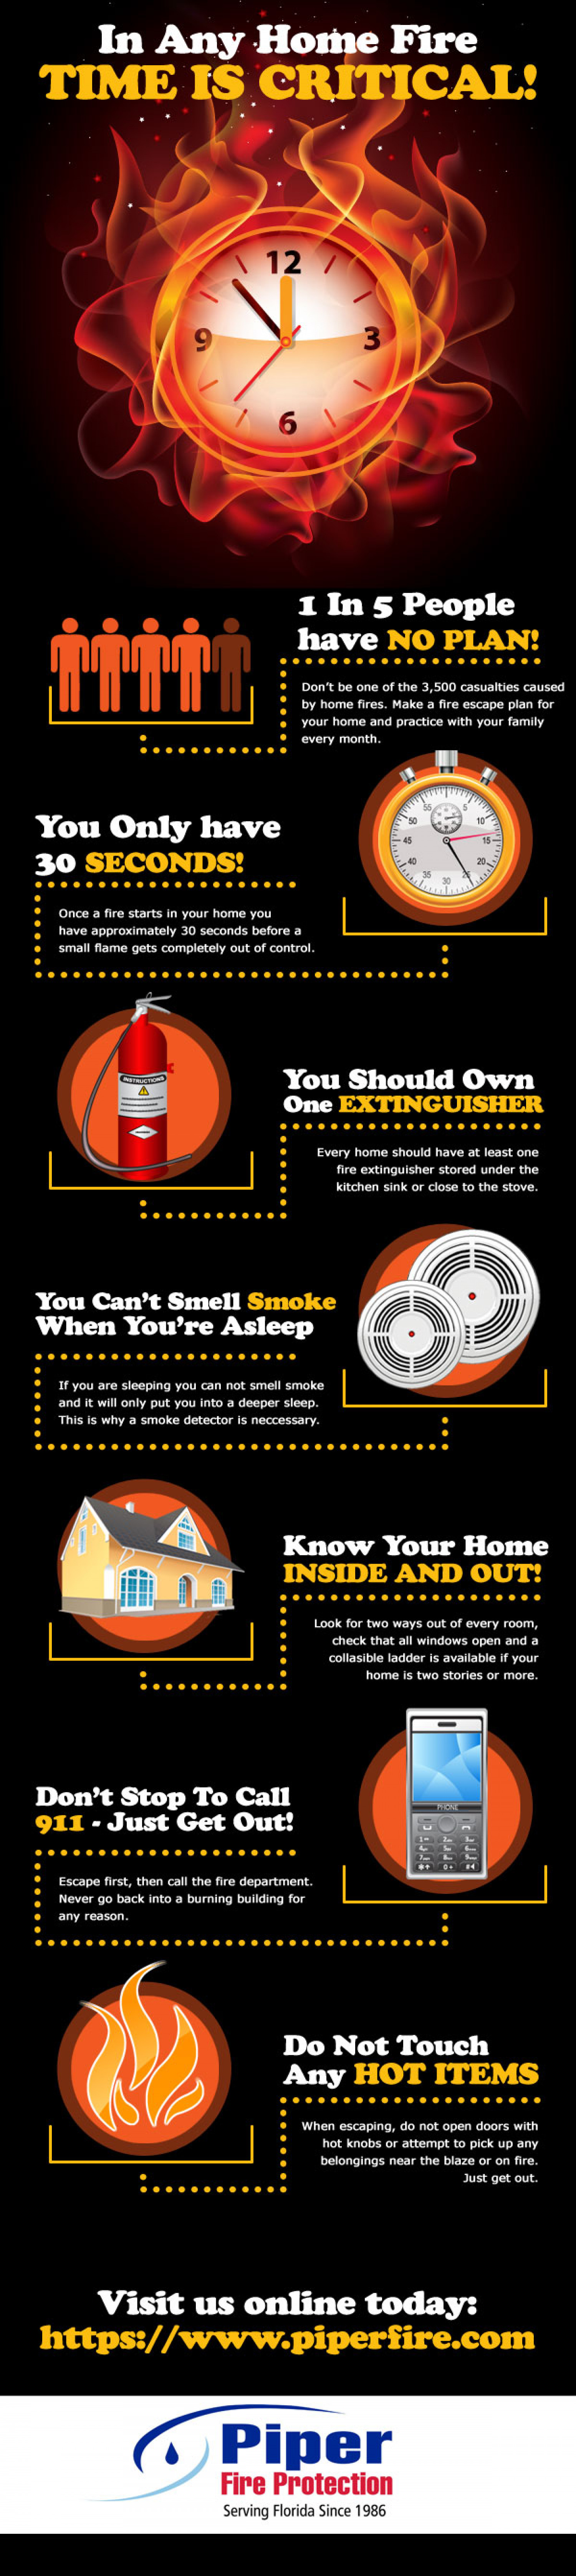 In any home fire TIME IS CRITICAL! Infographic